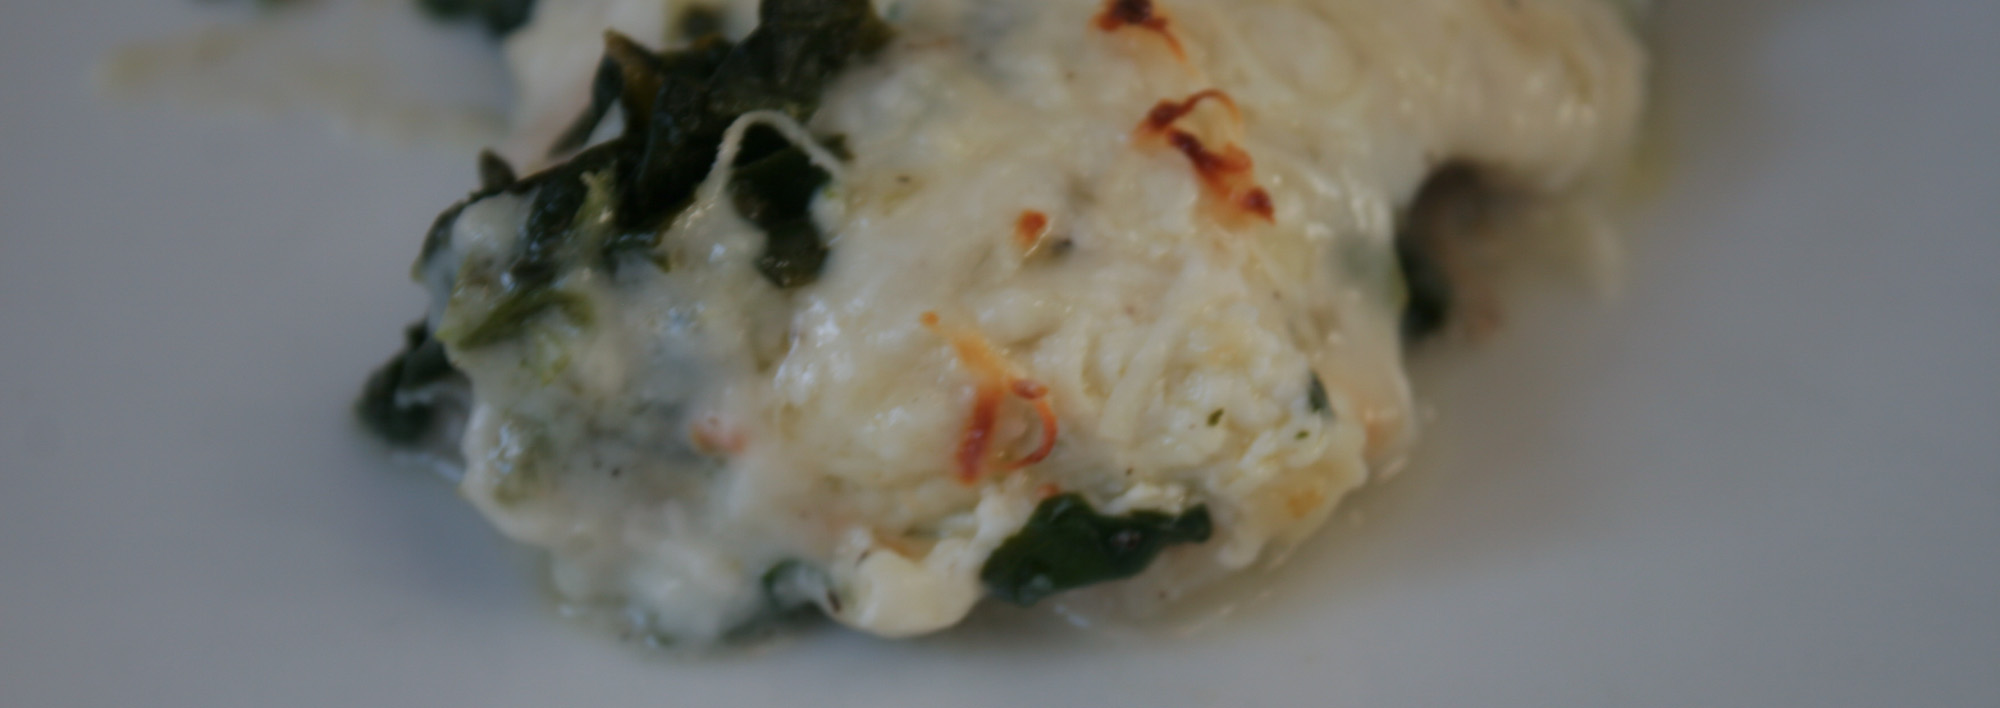 Tuscan Sole with Spinach - Italian Notes